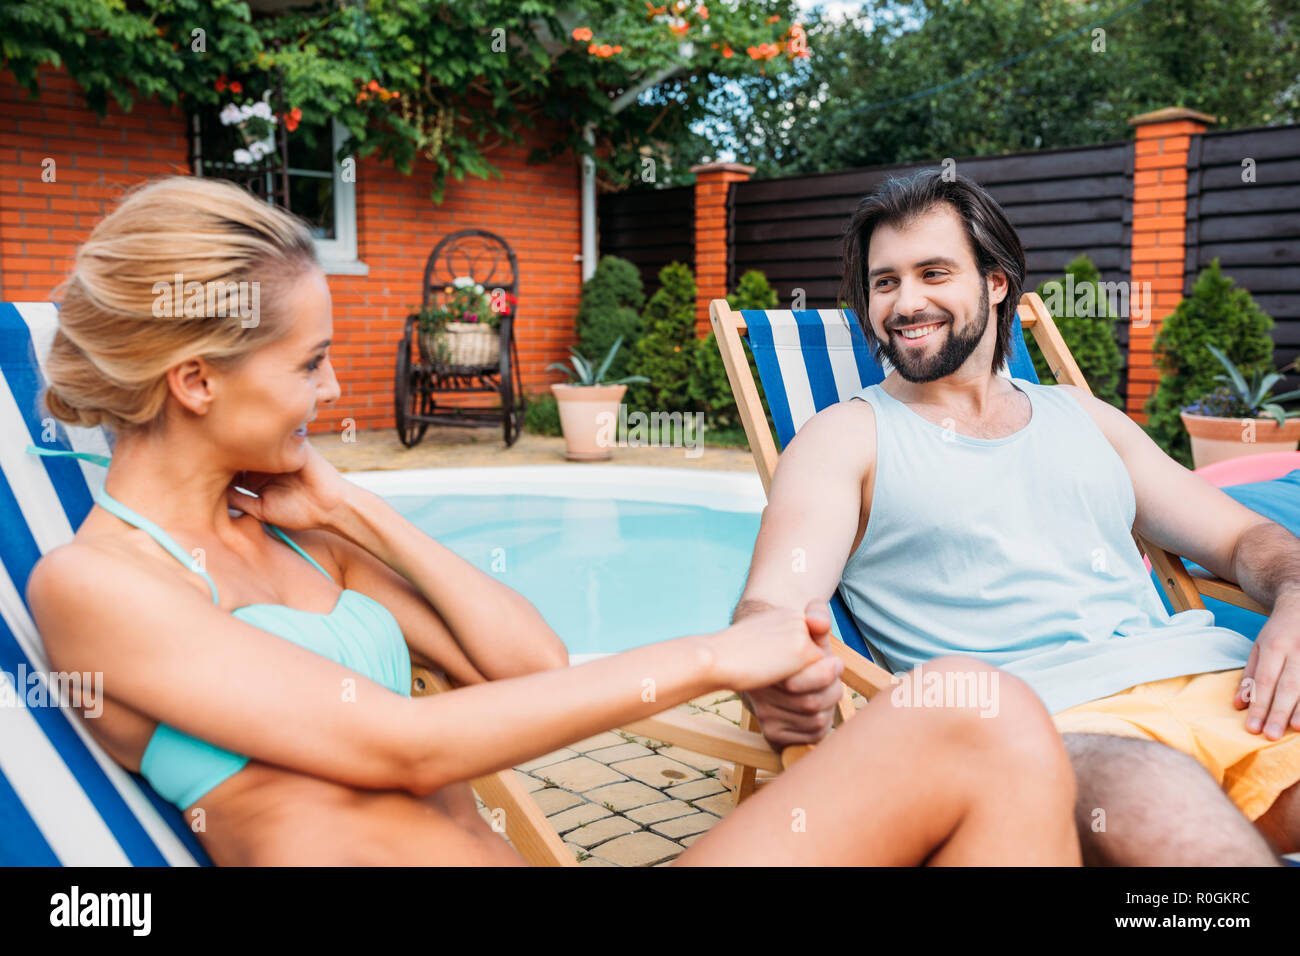 couple on beach chairs holding hands while spending time near swimming pool on backyard on summer day - Stock Image